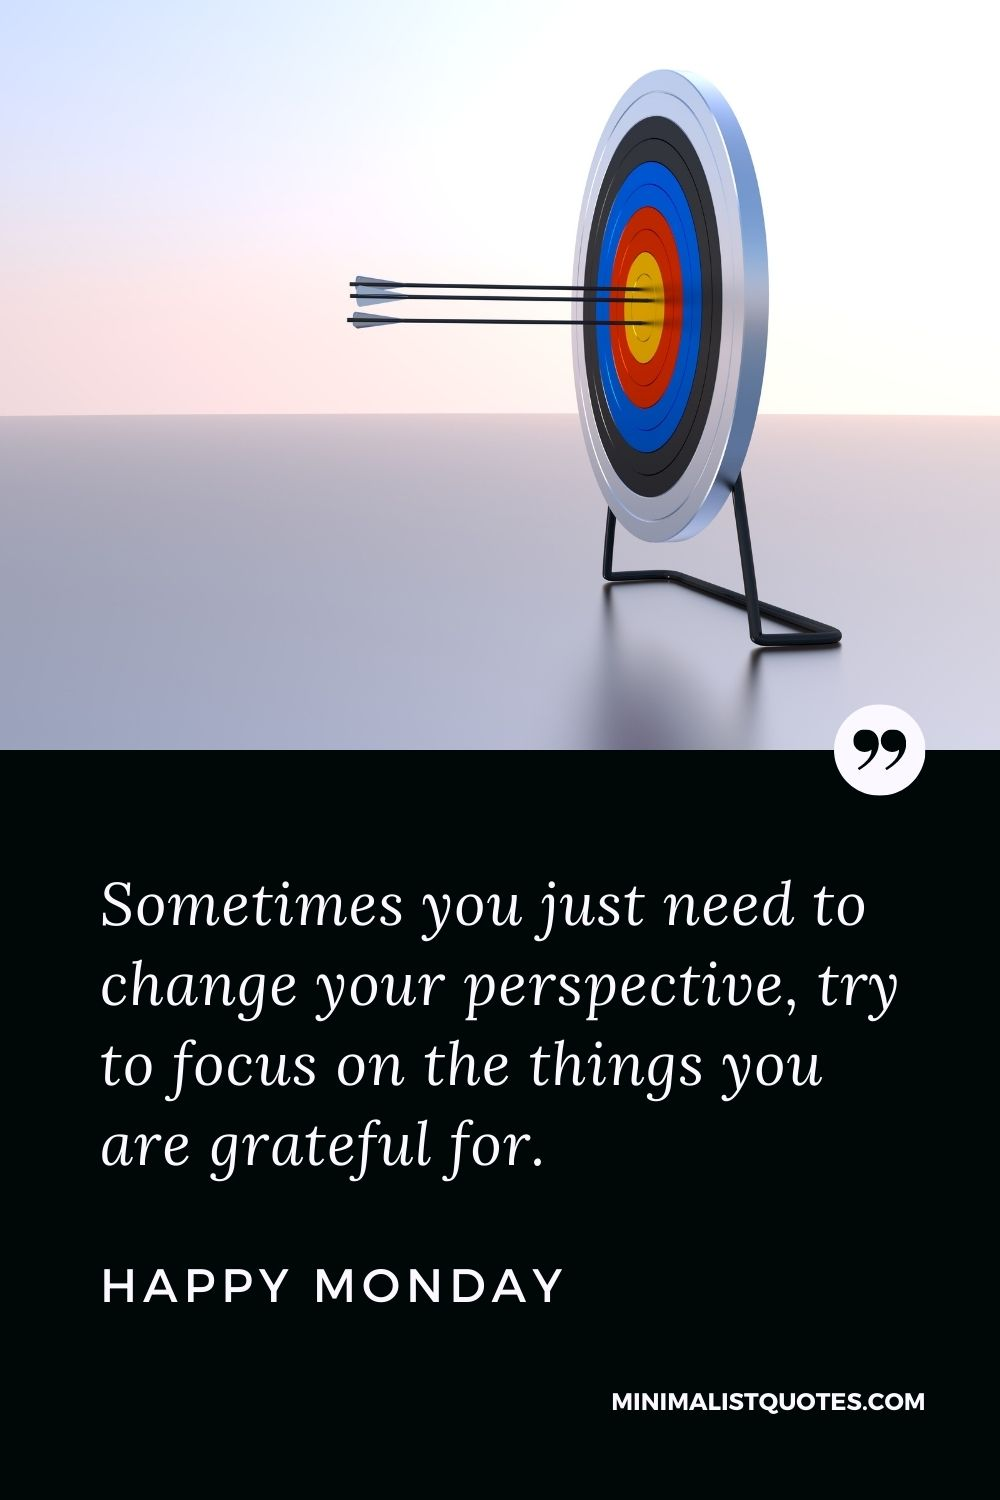 Monday Motivation Quote & Message with Image: Sometimes you just need to change your perspective, try to focus on the things you are grateful for. Happy Monday!